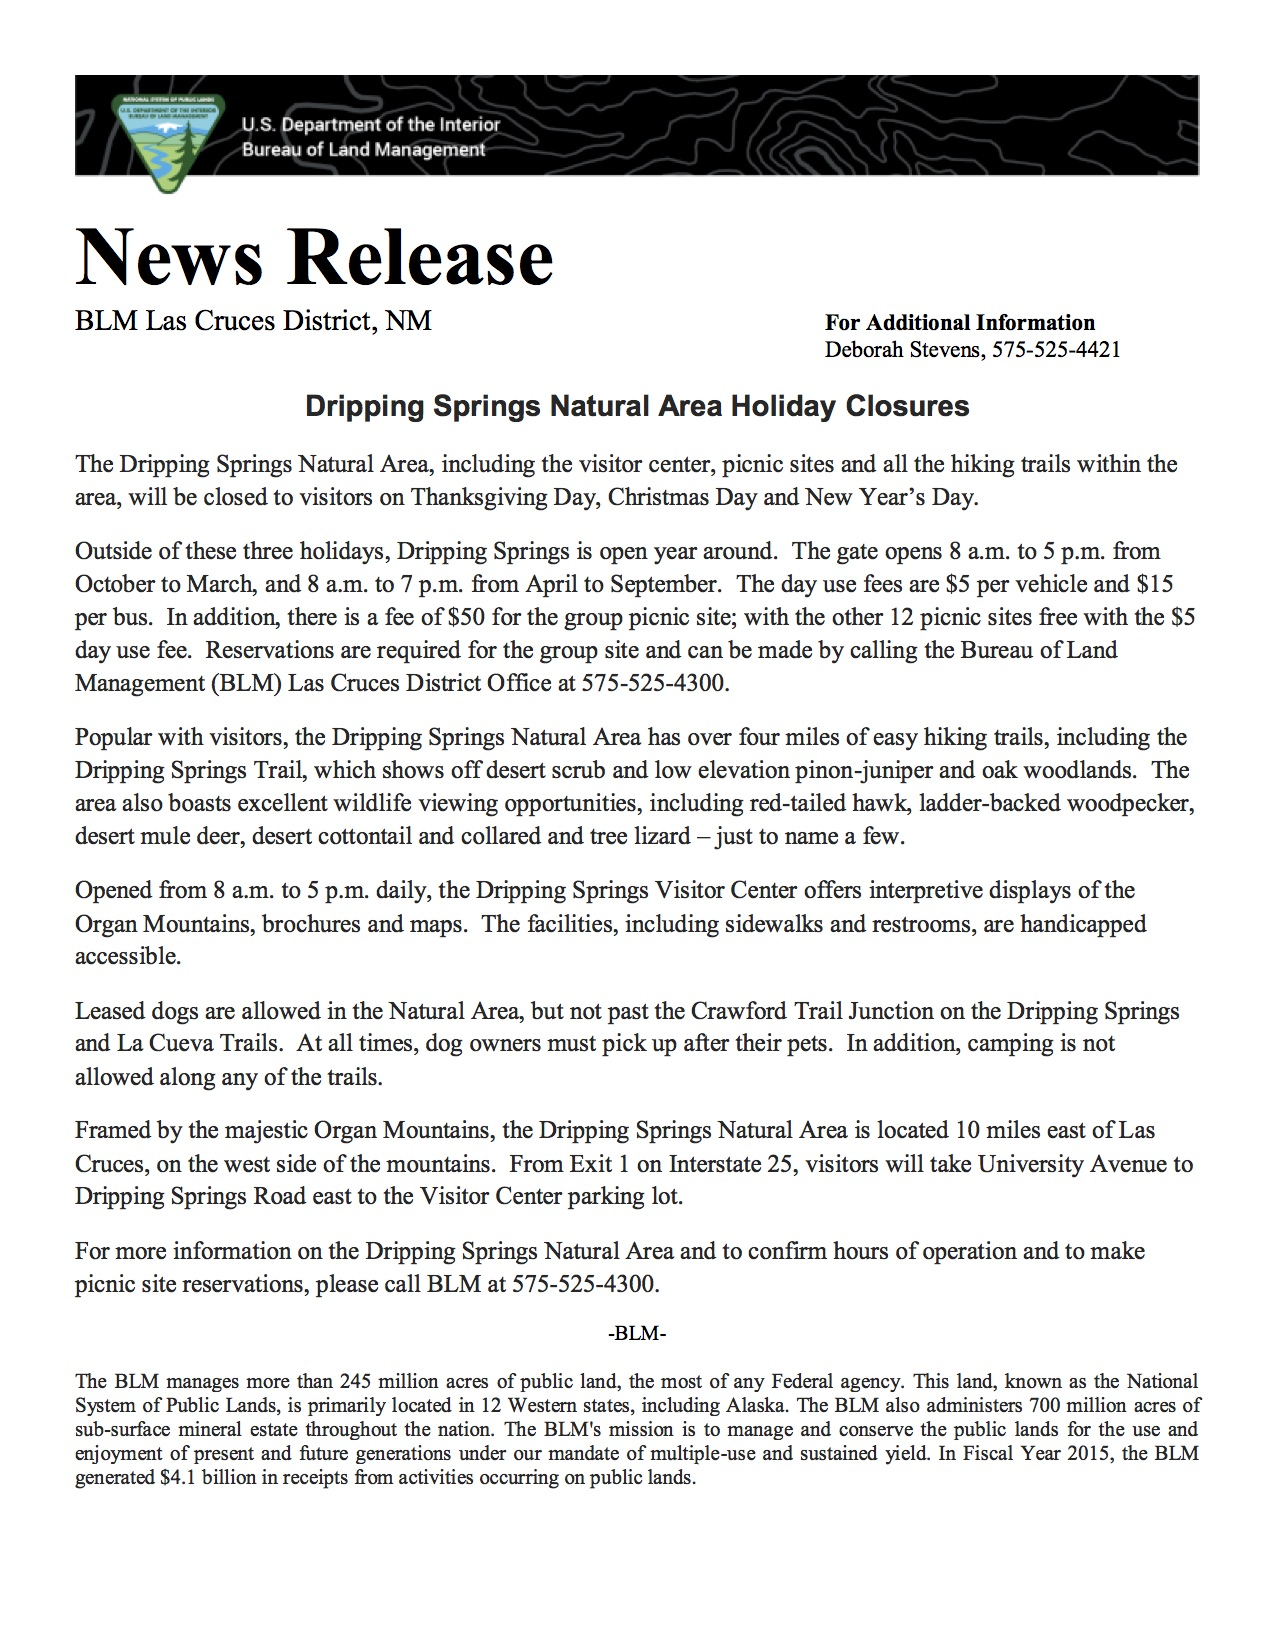 dripping springs natural area holiday closures friends of organ